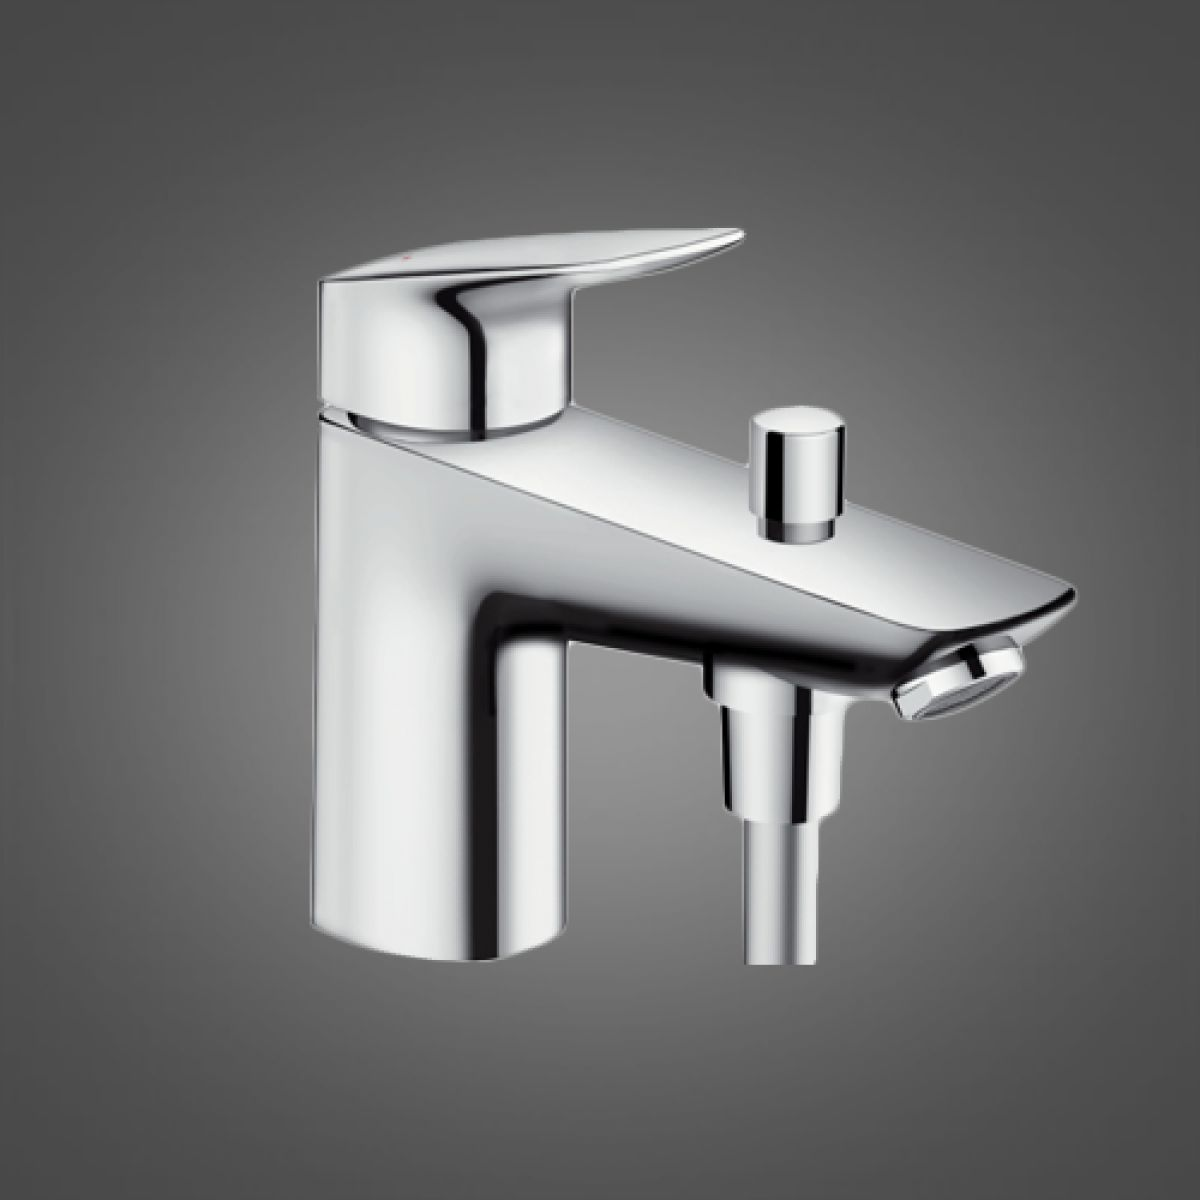 hansgrohe logis single lever bath shower mixer uk bathrooms hansgrohe talis e2 concealed bath shower mixer amp diverter